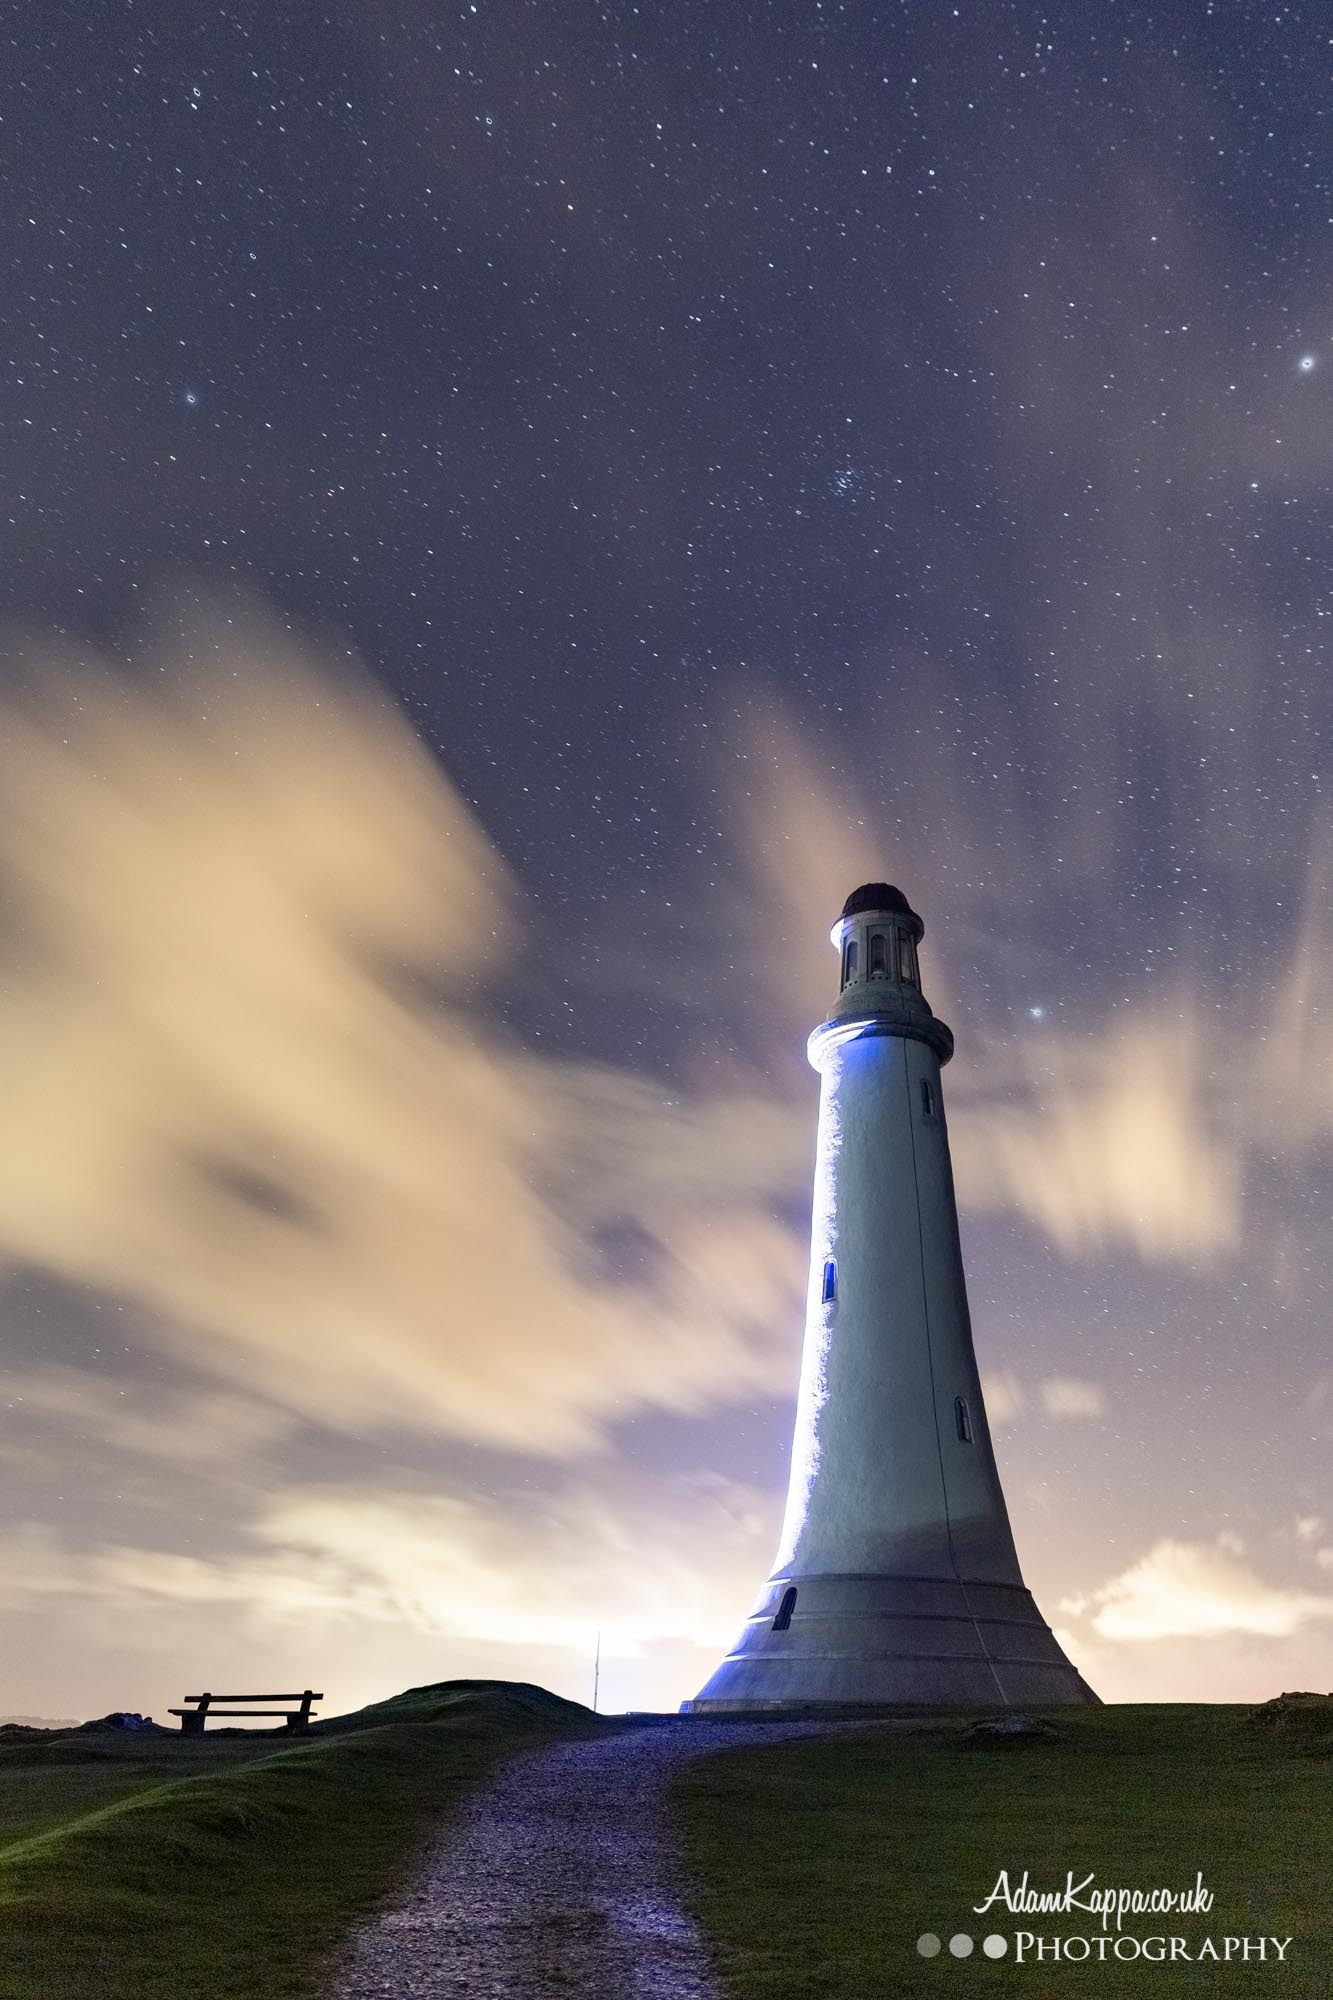 Hoad Monument surrounded by stars